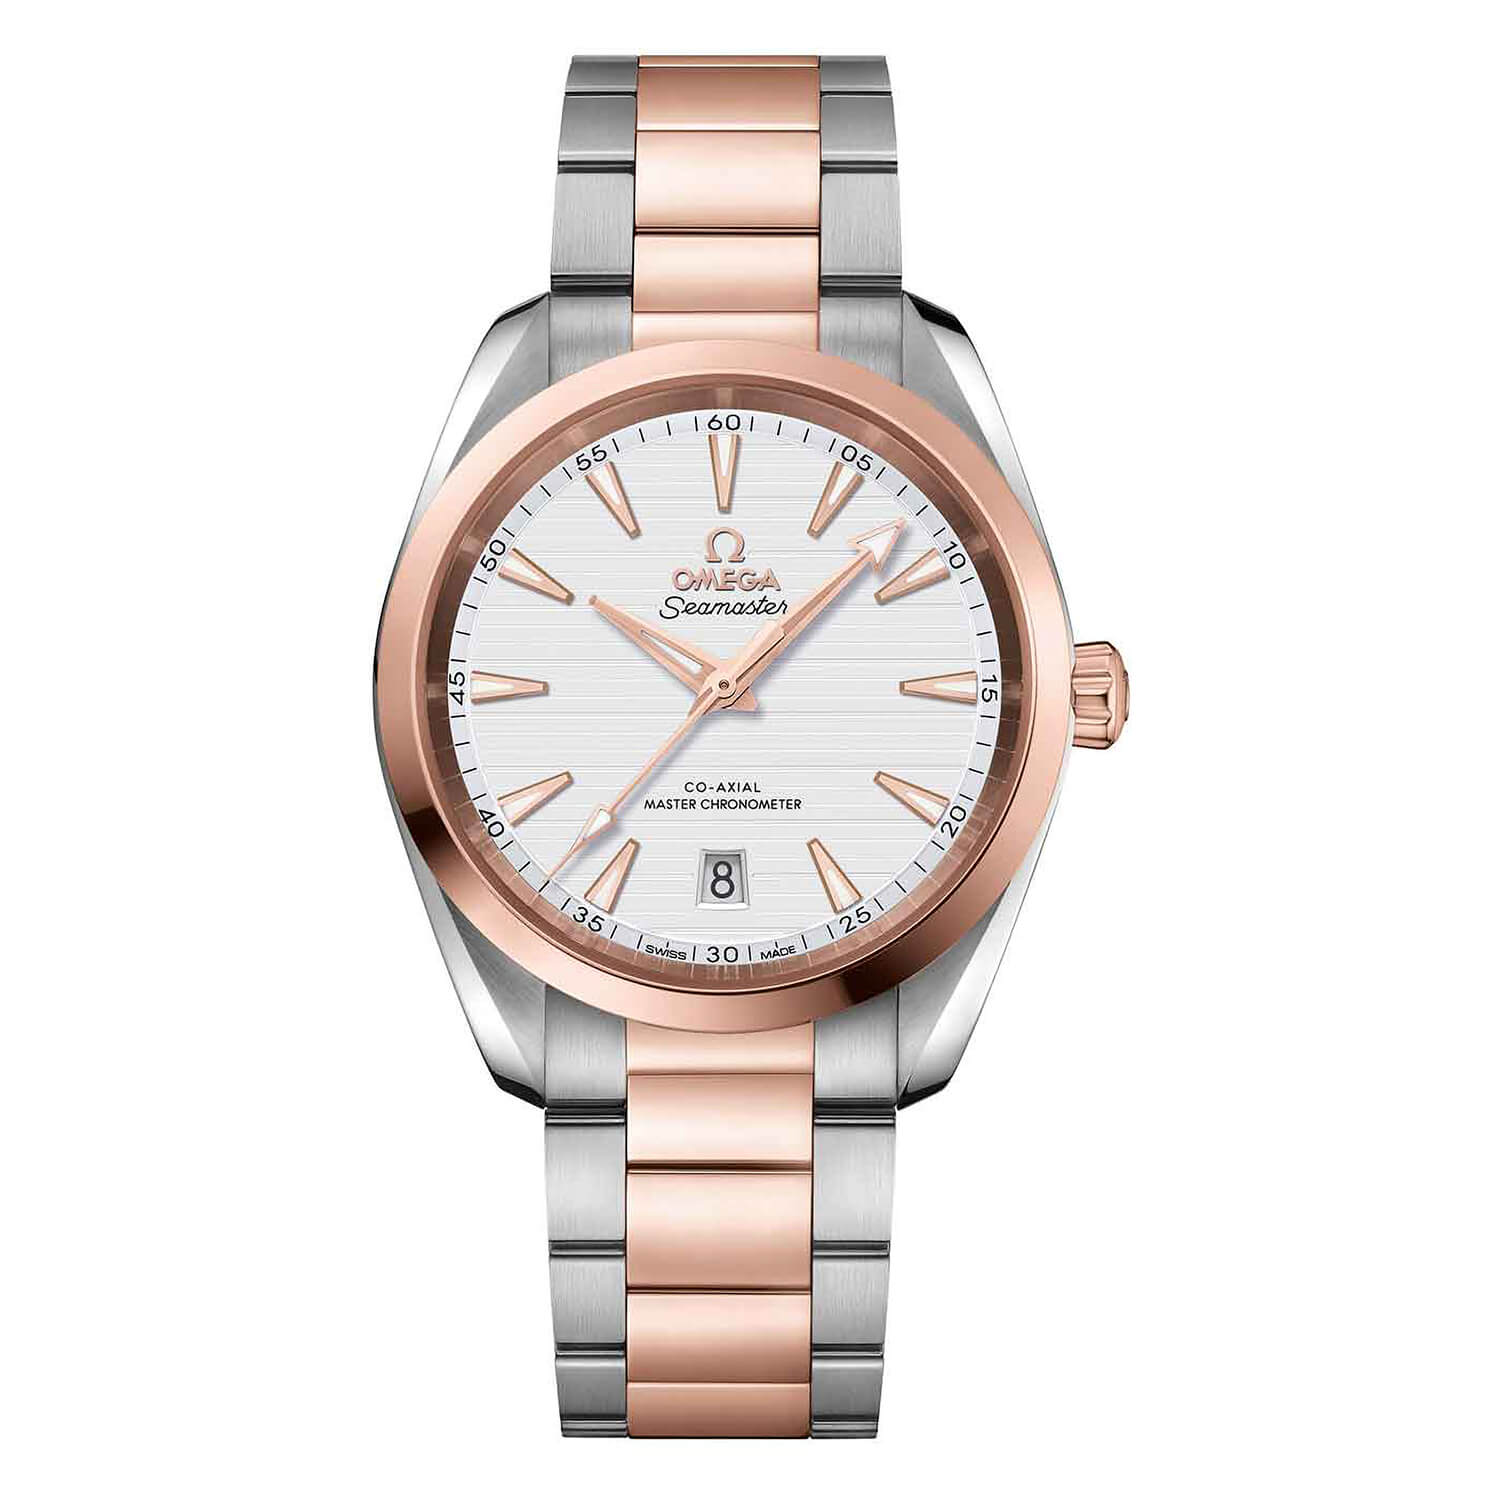 Omega Seamaster Automatic Stainless Steel and Rose Gold White Dial Men's Watch